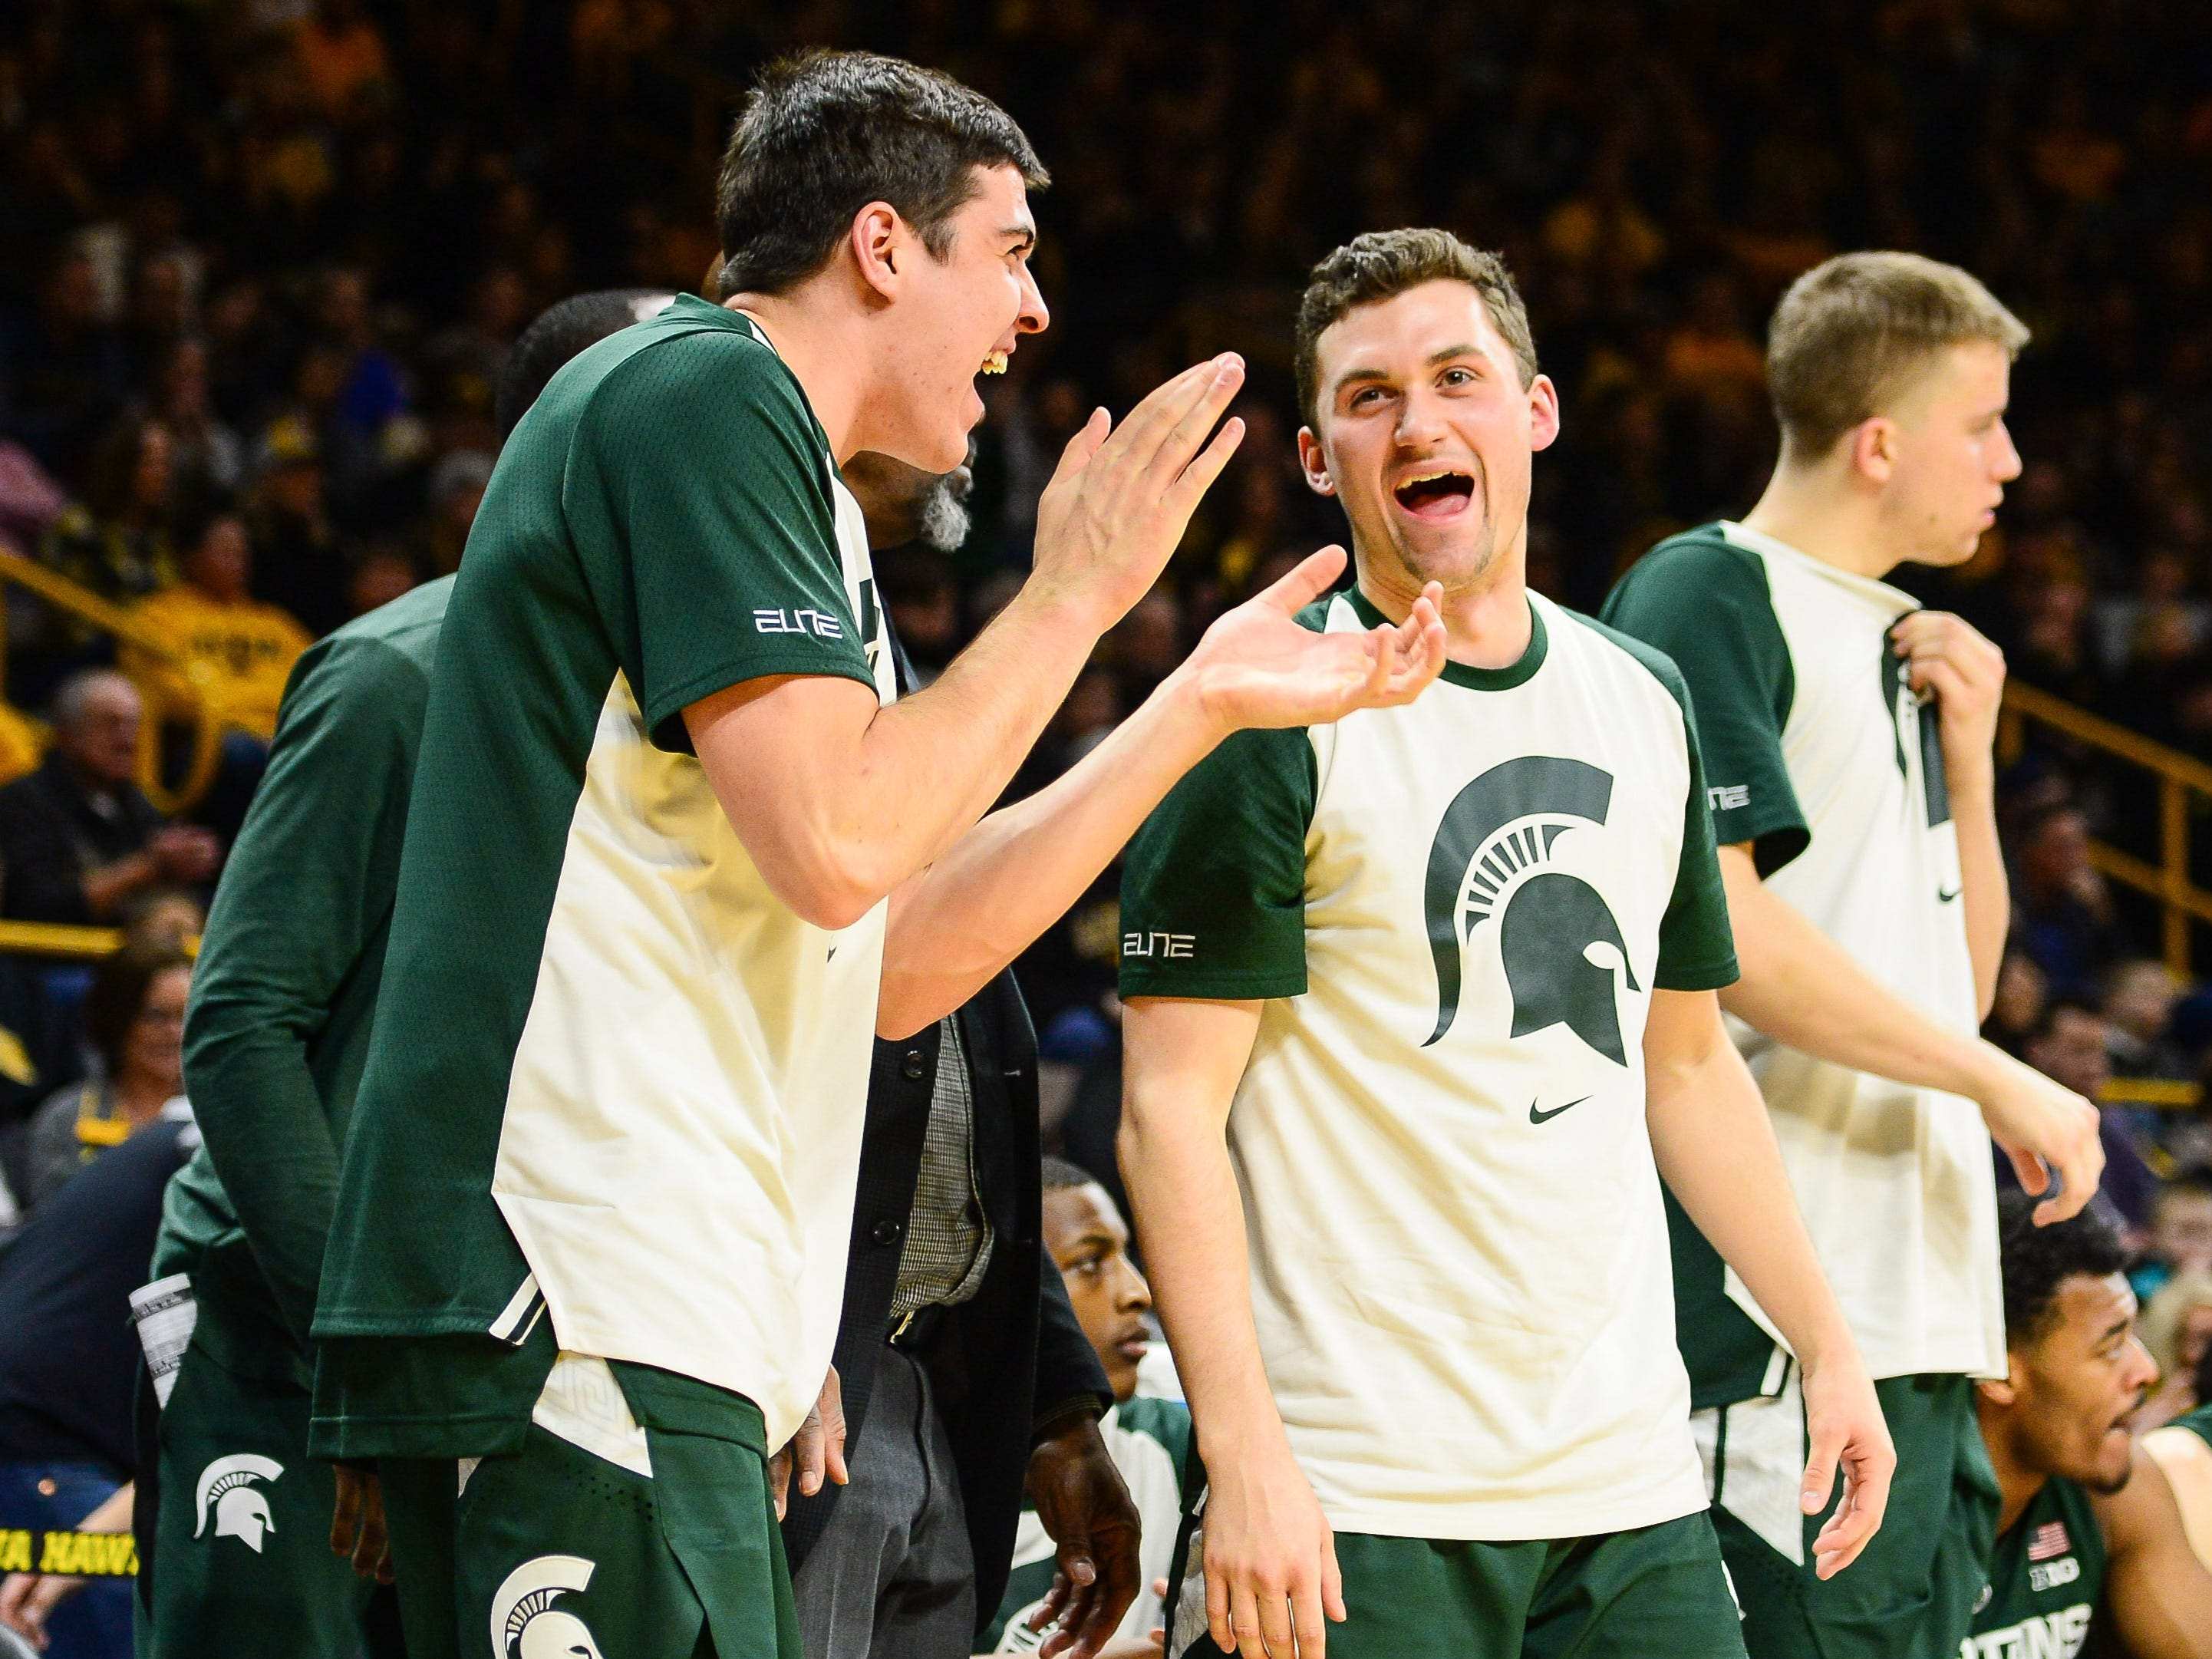 Michigan State Spartans players celebrate on the bench during the second half against the Iowa Hawkeyes at Carver-Hawkeye Arena.